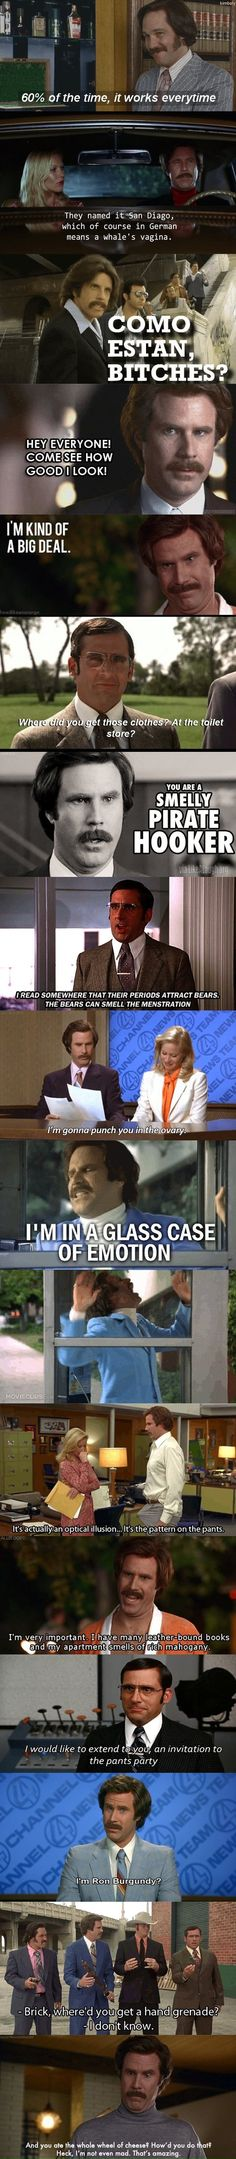 Anchorman, can't wait for #2